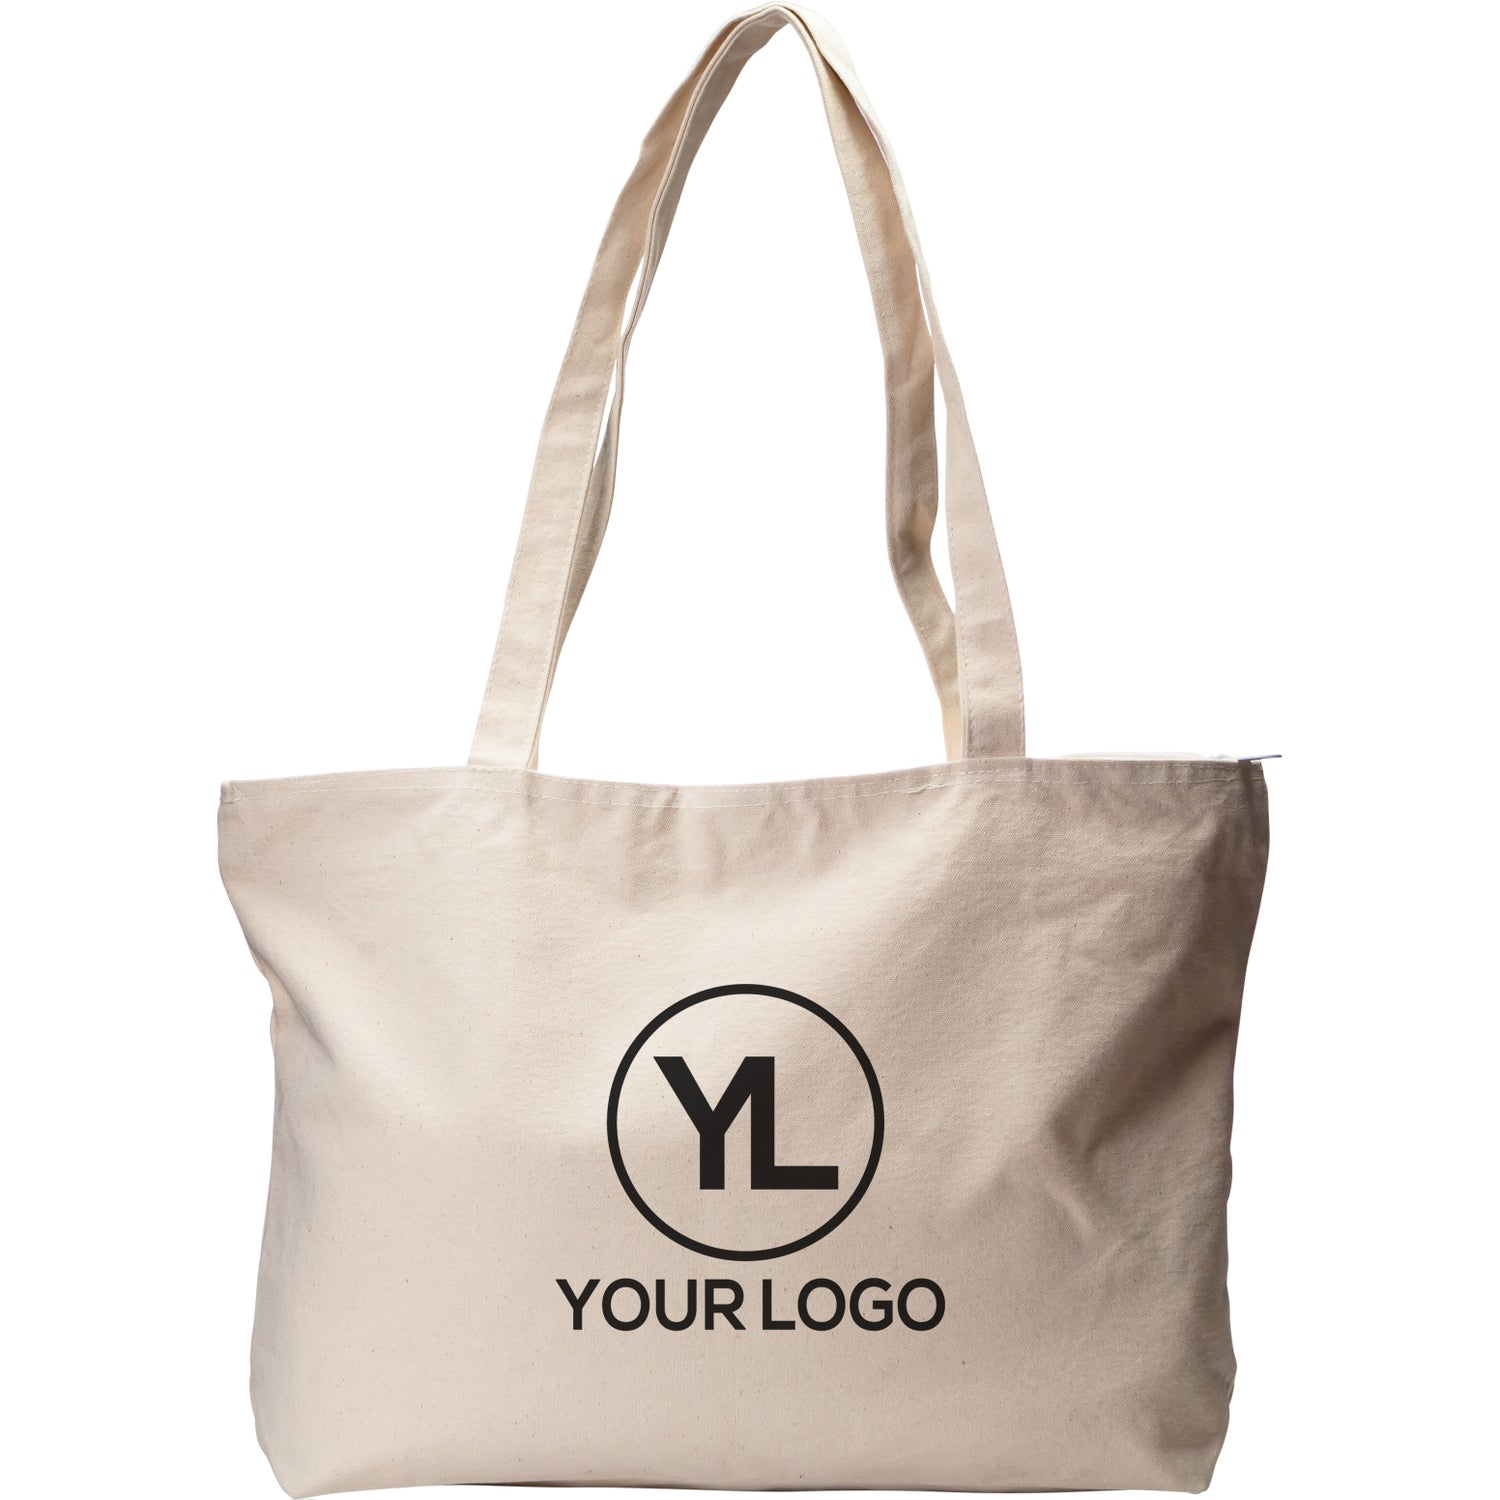 5d4ca1e1474 Promotional Signature Cotton Zippered Totes with Custom Logo for ...